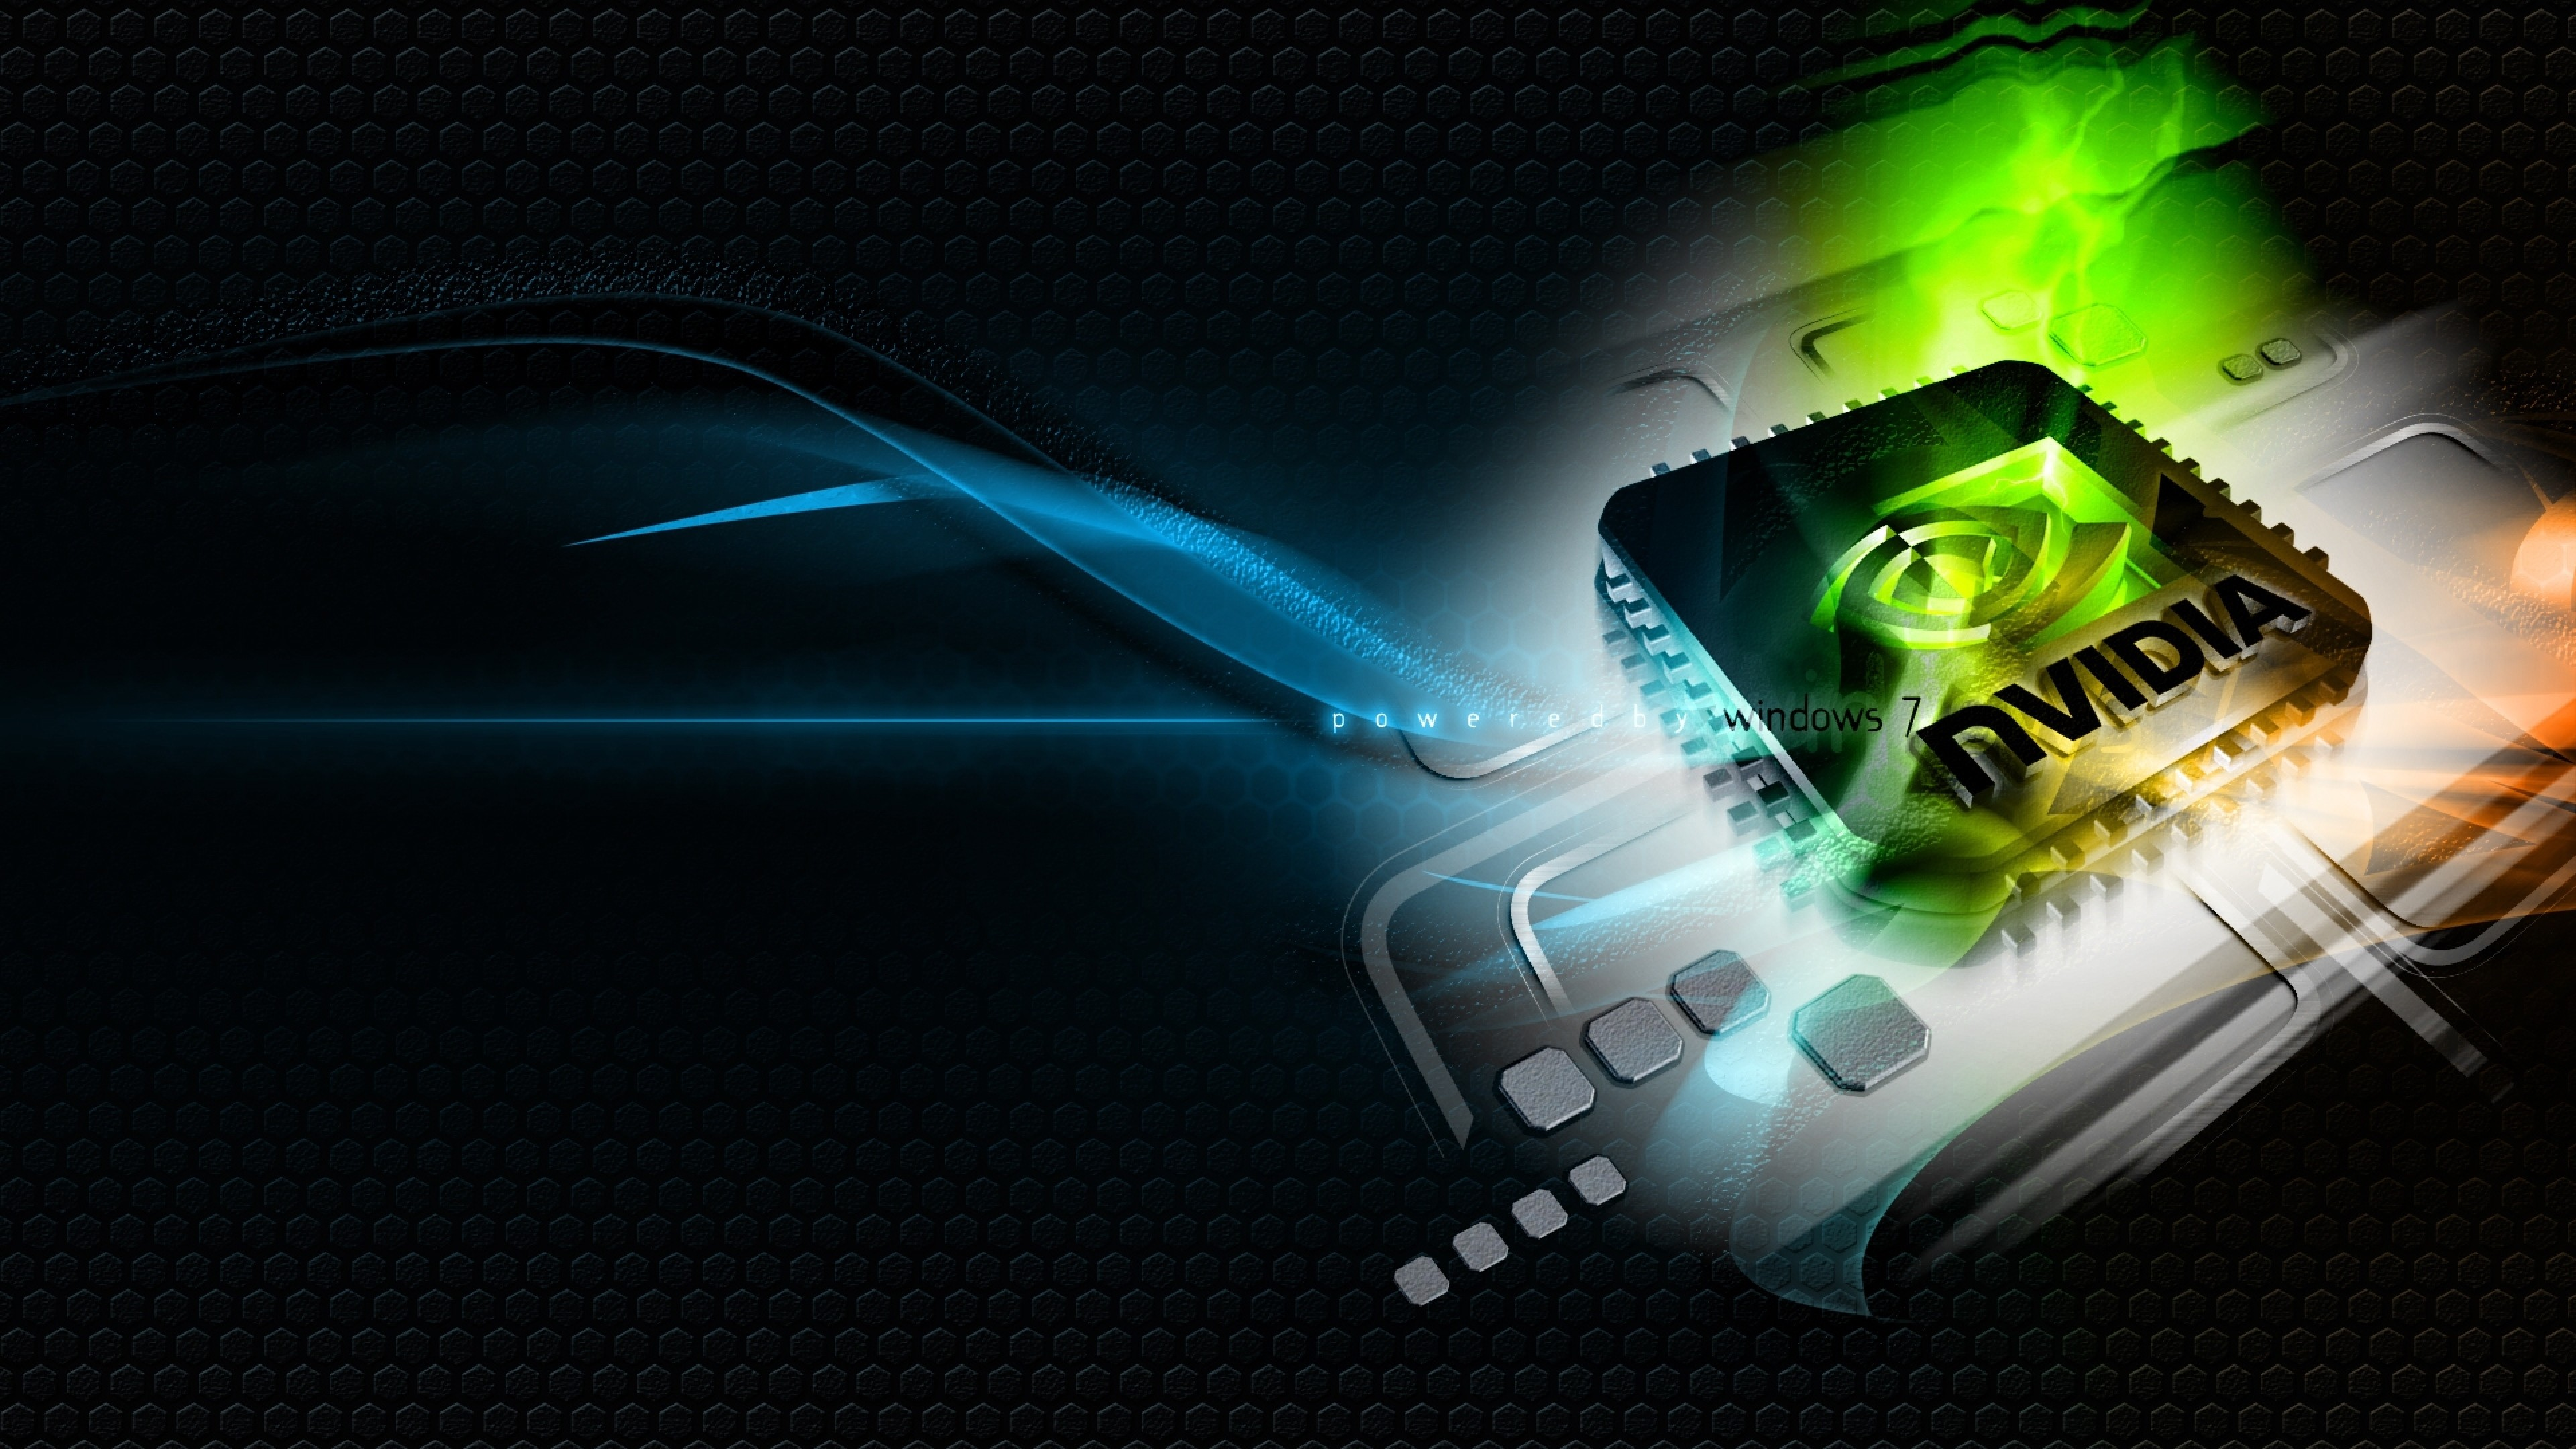 Preview wallpaper nvidia, green, blue, white, chip 3840×2160